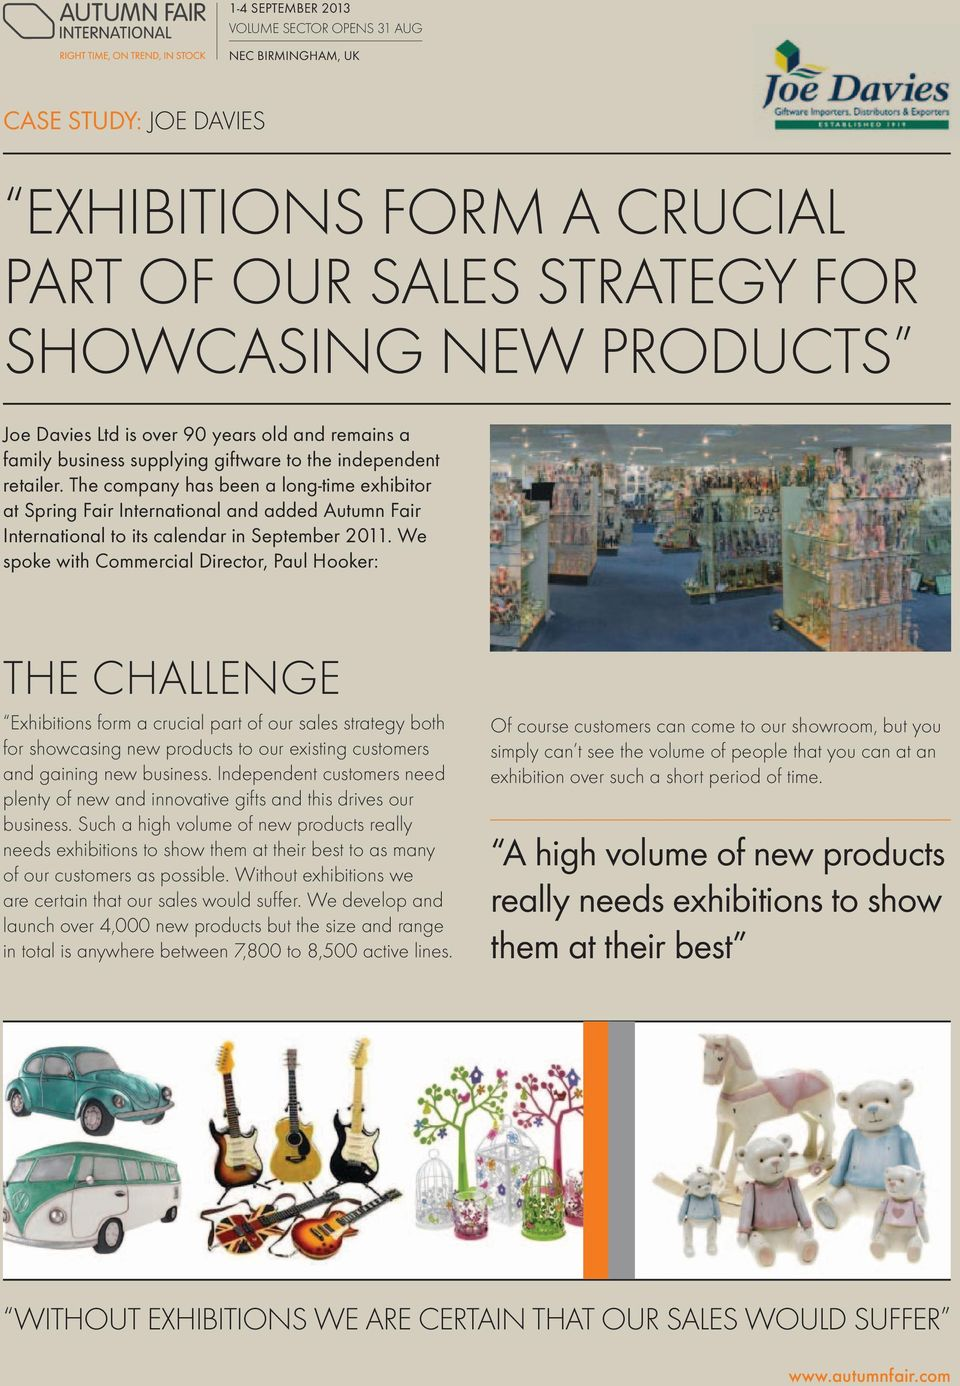 We spoke with Commercial Director, Paul Hooker: THE CHALLENGE Exhibitions form a crucial part of our sales strategy both for showcasing new products to our existing customers and gaining new business.